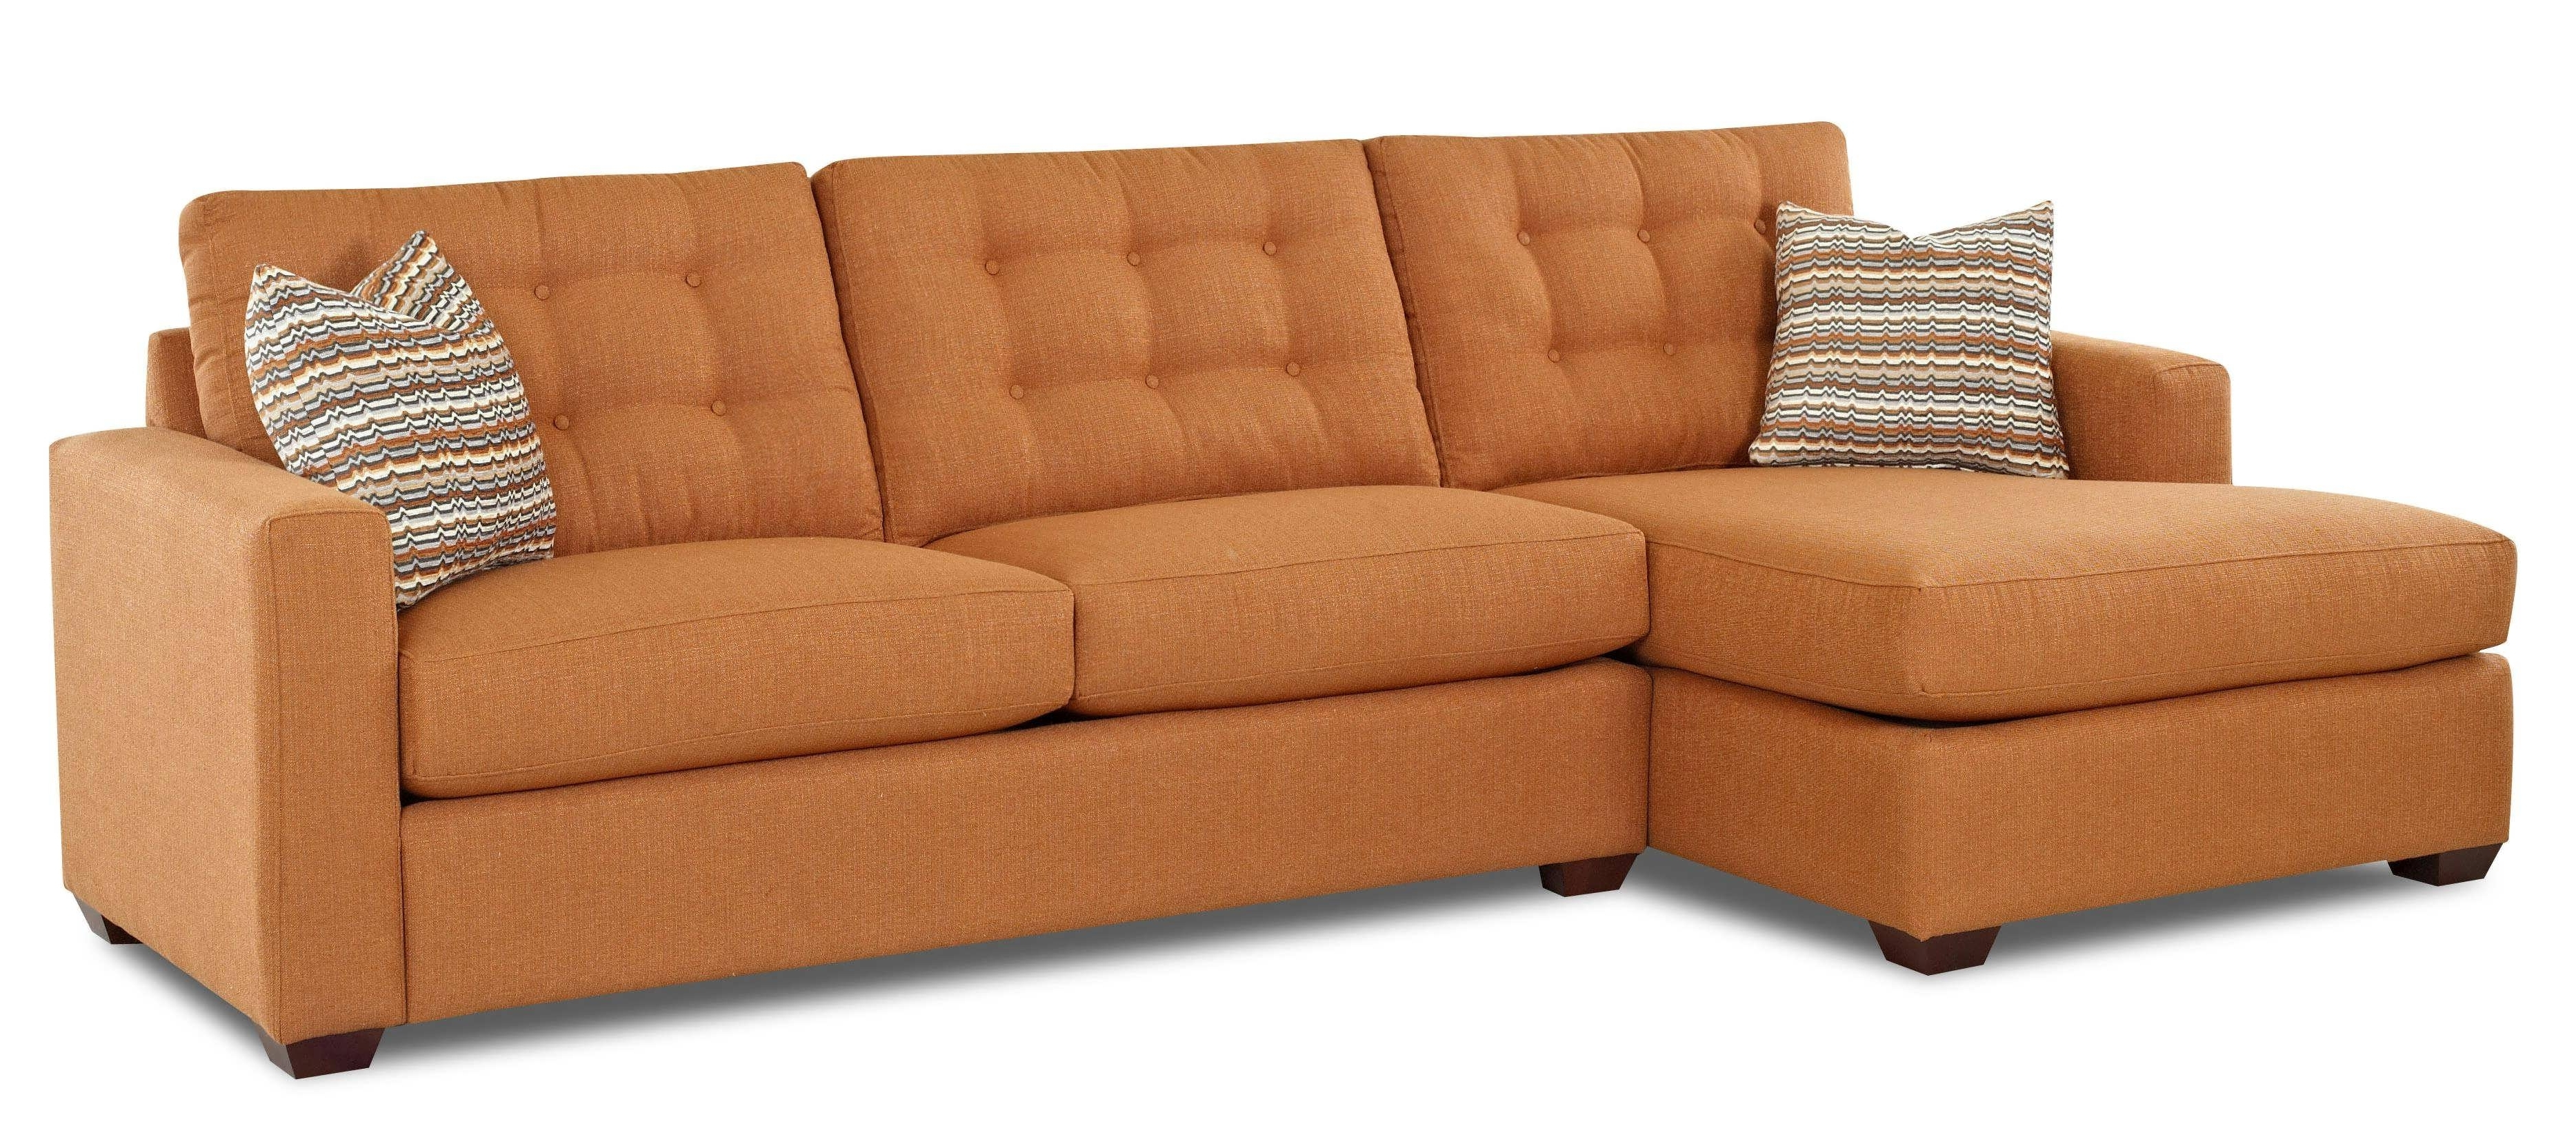 Trendy Chaise Lounge Sofa (View 13 of 15)